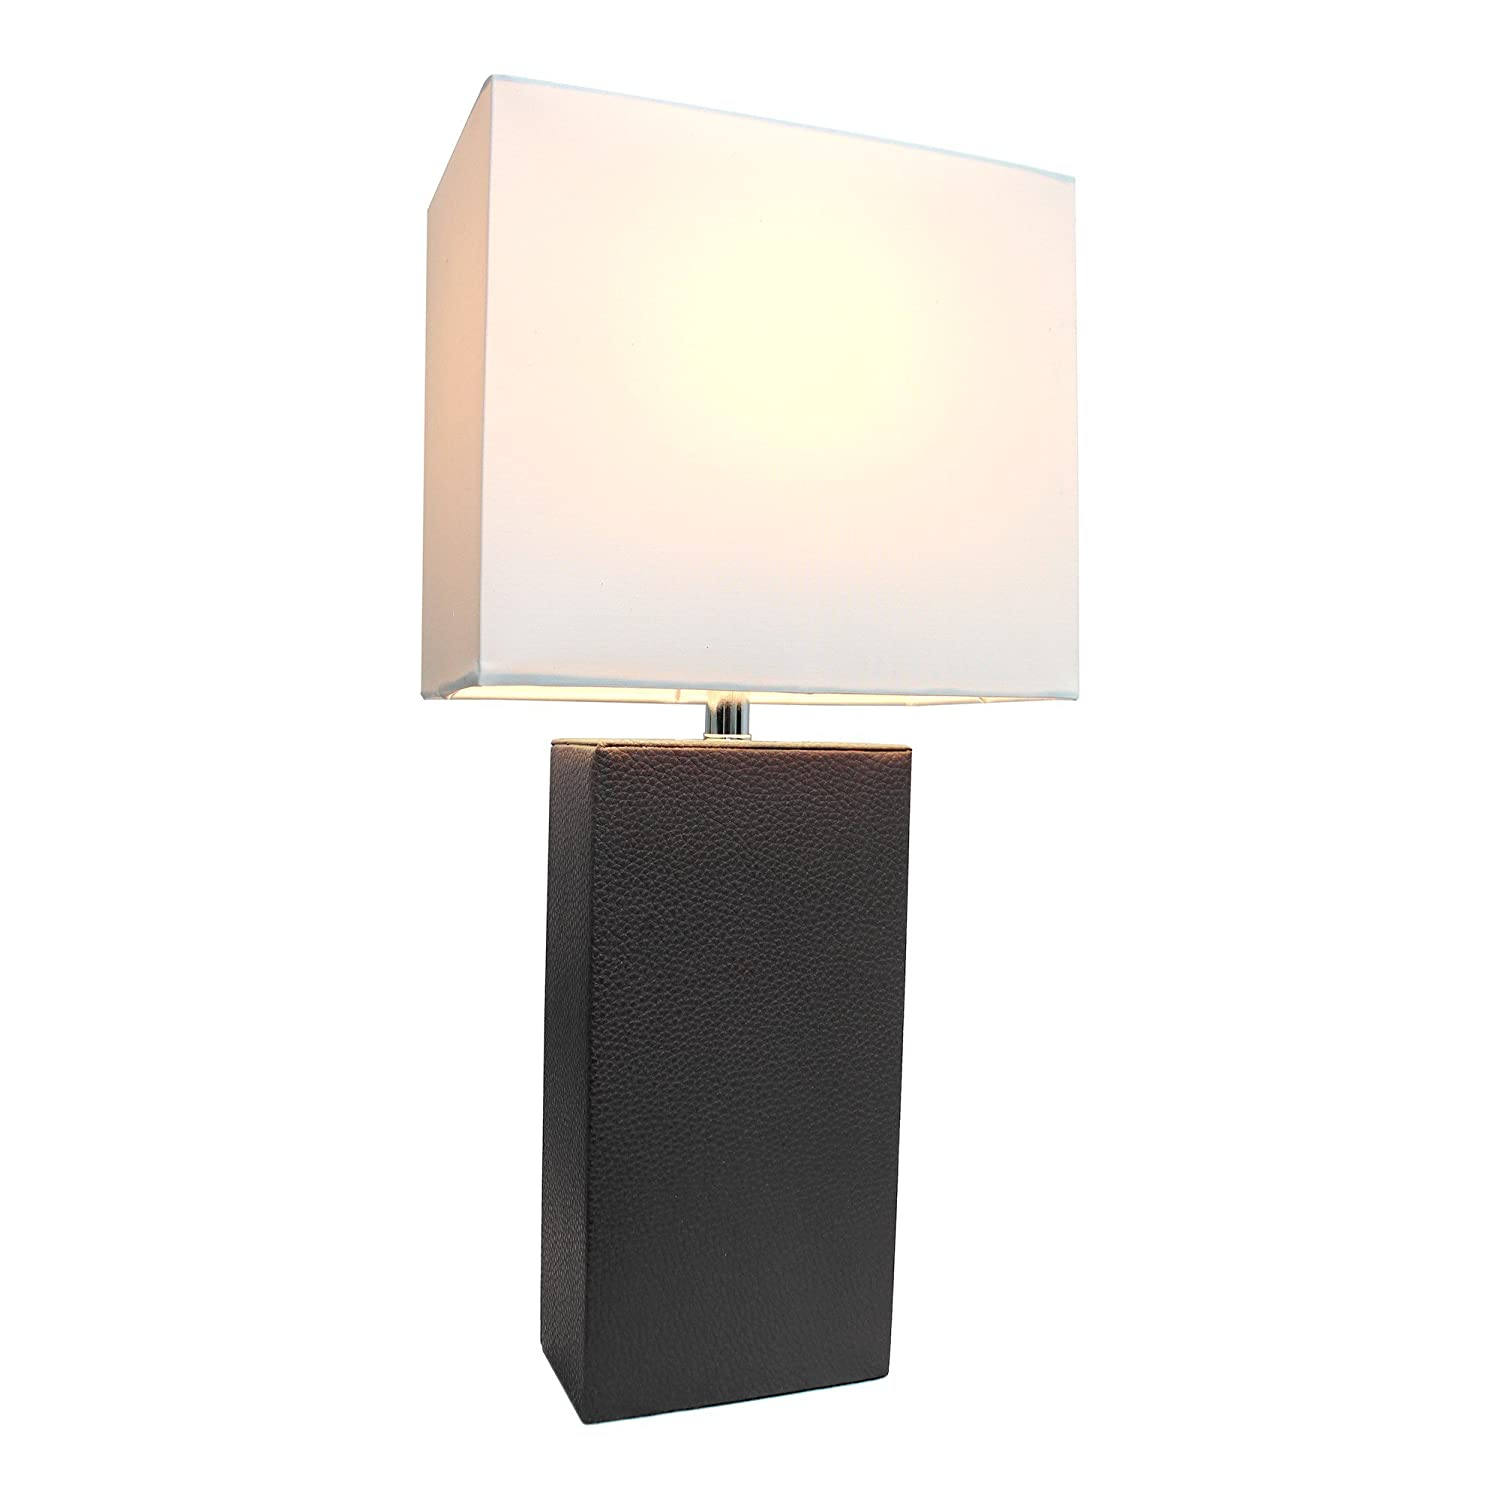 Elegant Designs Table Lamp Black Friday Deals